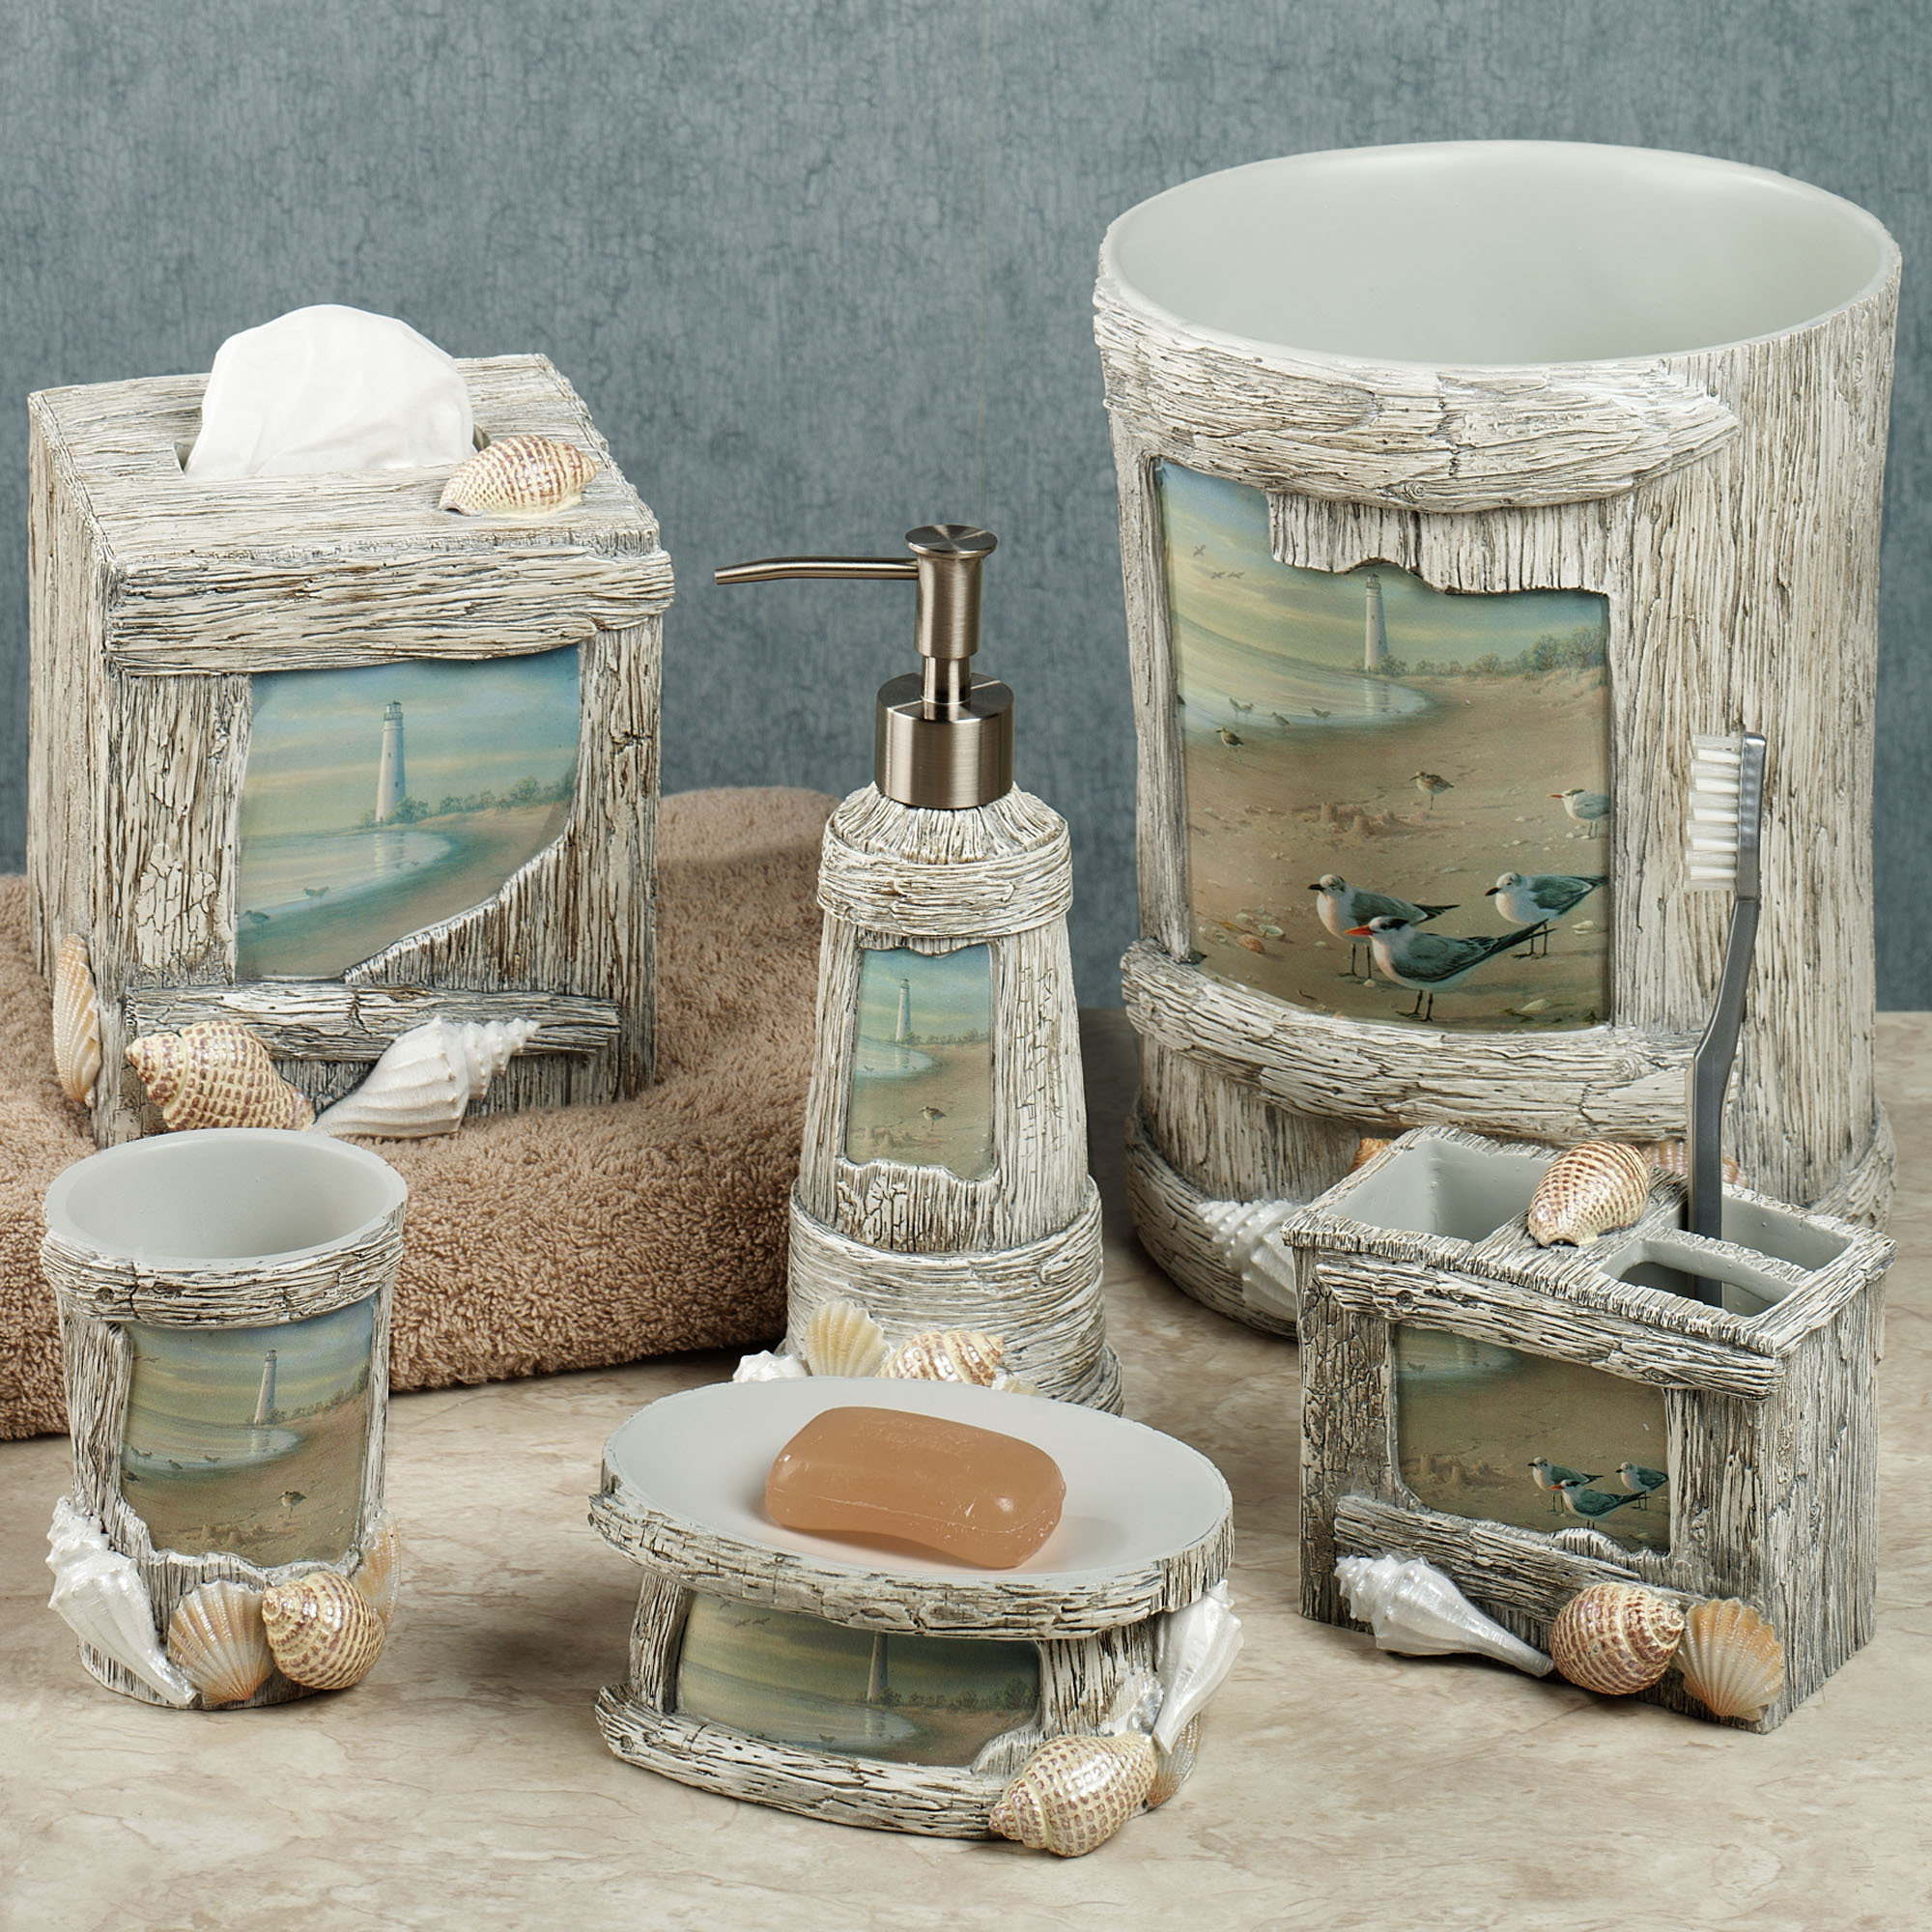 Bathroom Decor Sets enjoyable lighthouse apothecary bath accesories nautical bathroom decor sets  for decorate ocean BLBKJTK